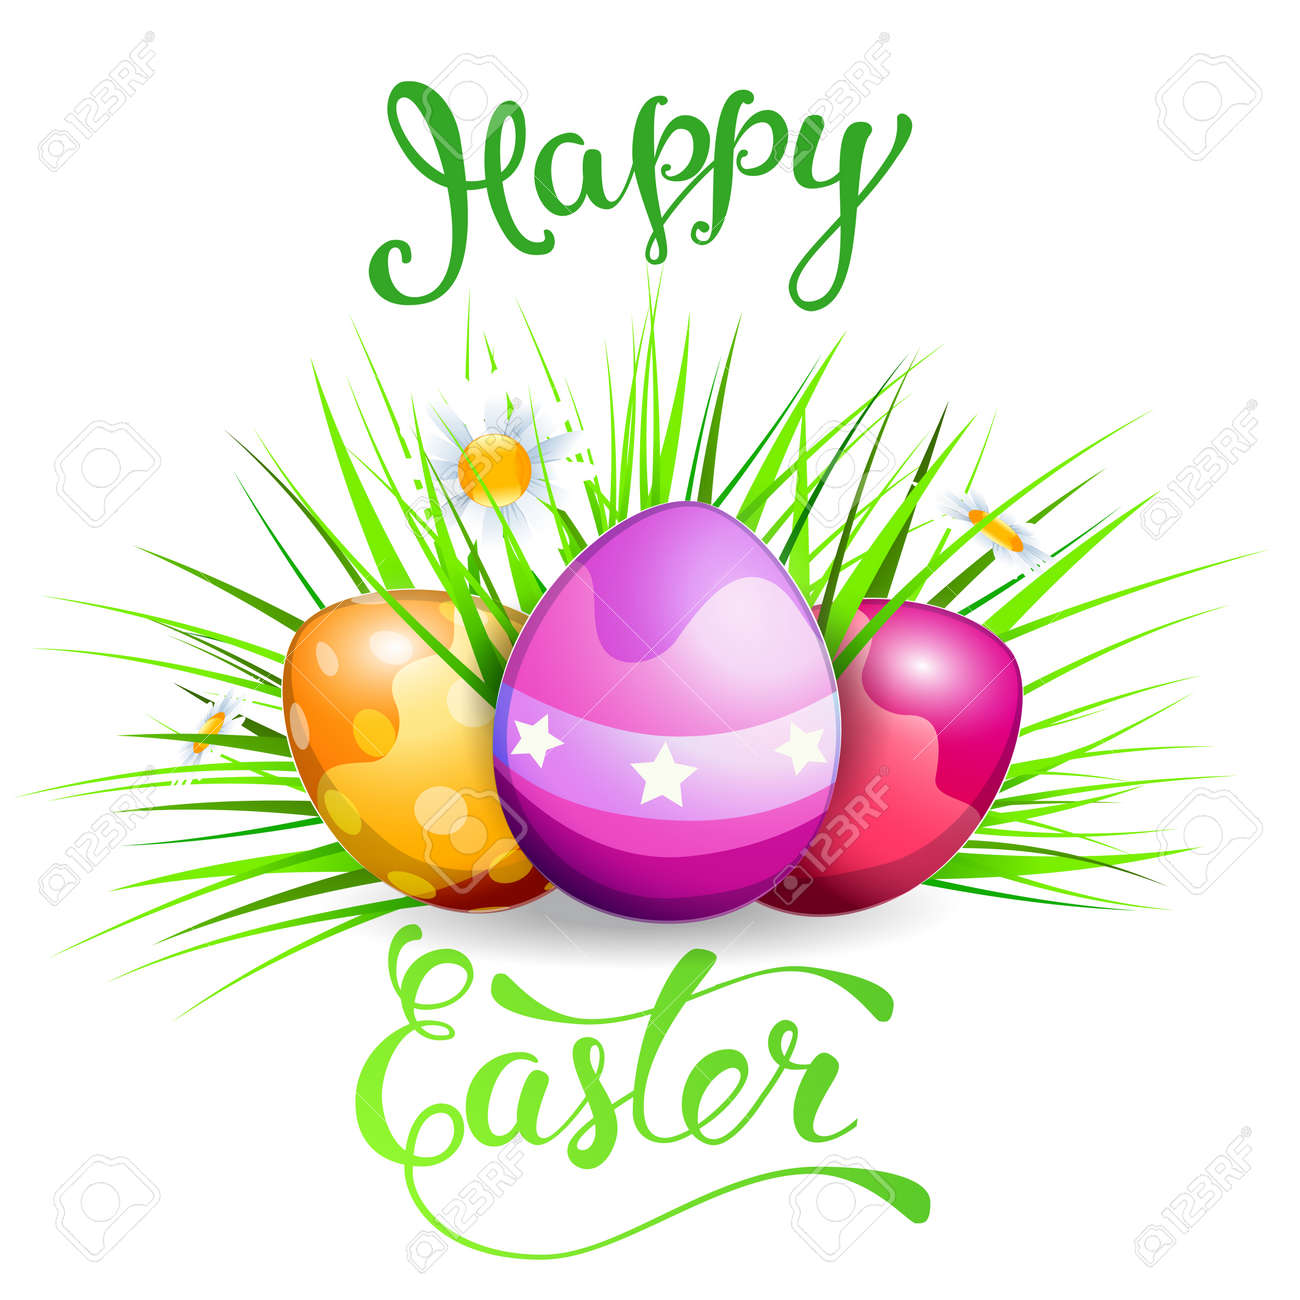 Easter Greeting Card With Easter Eggs And Original Text Happy